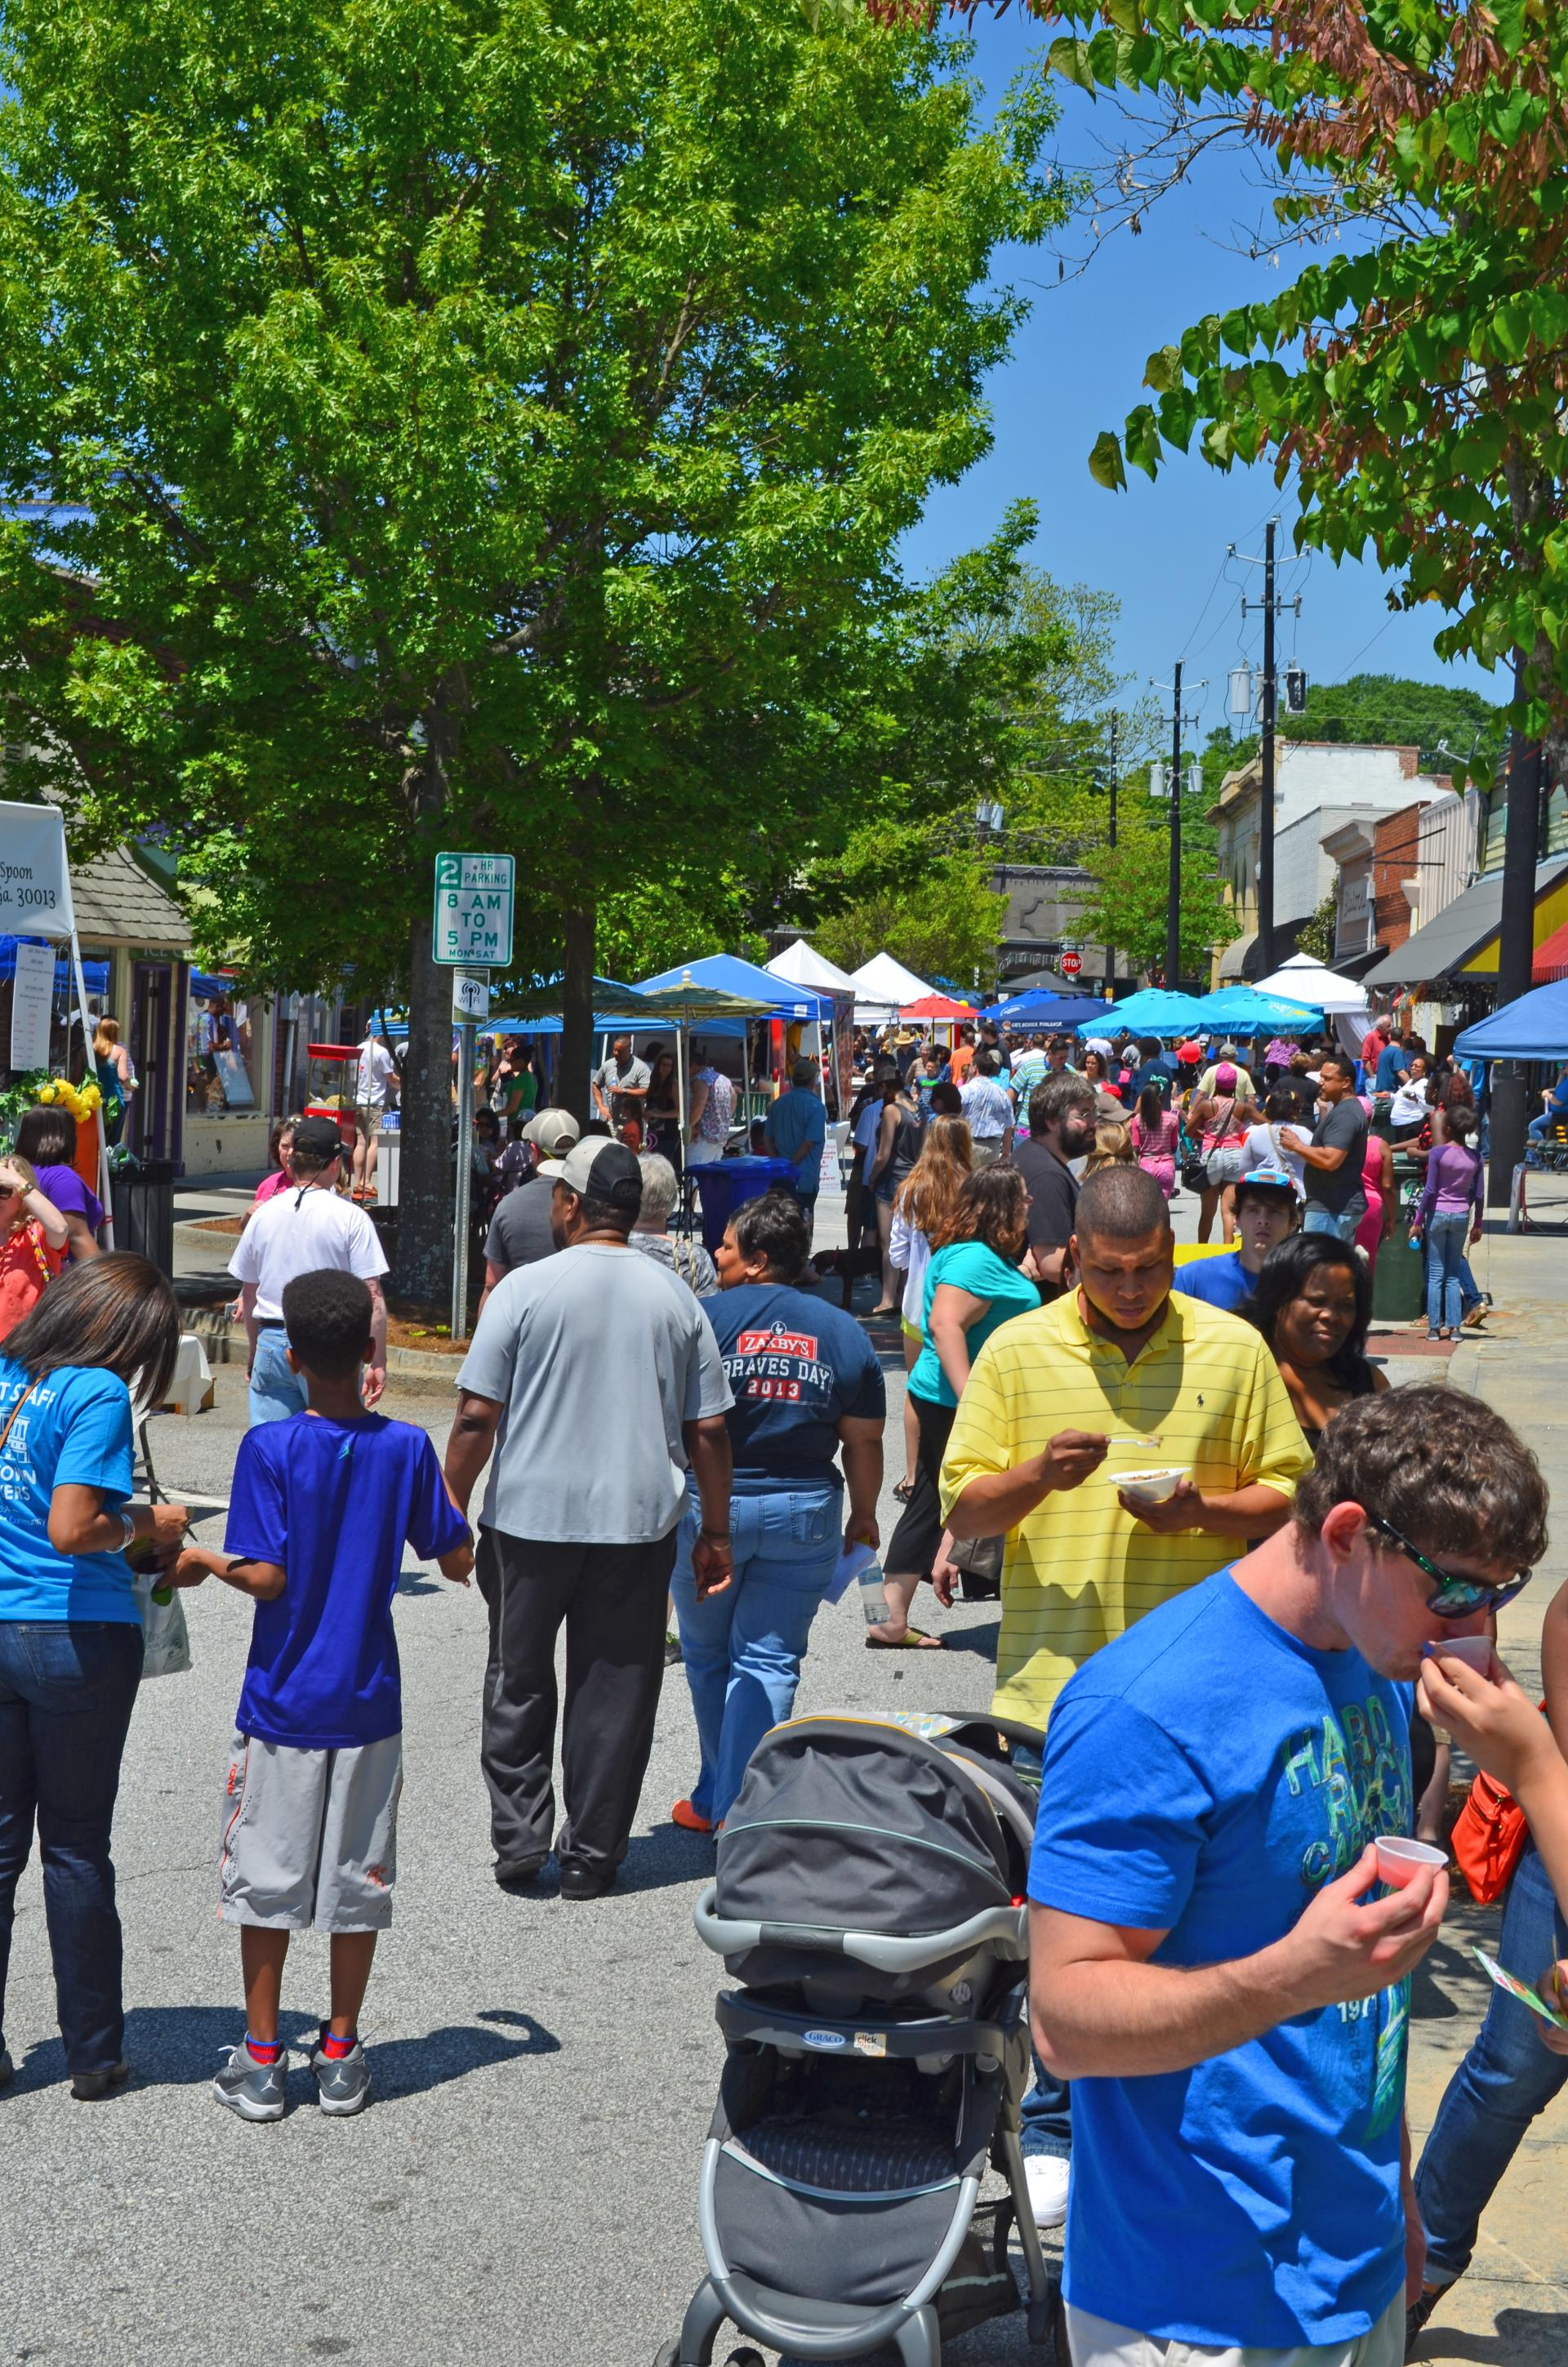 Taste of Conyers 2015 crowd shot